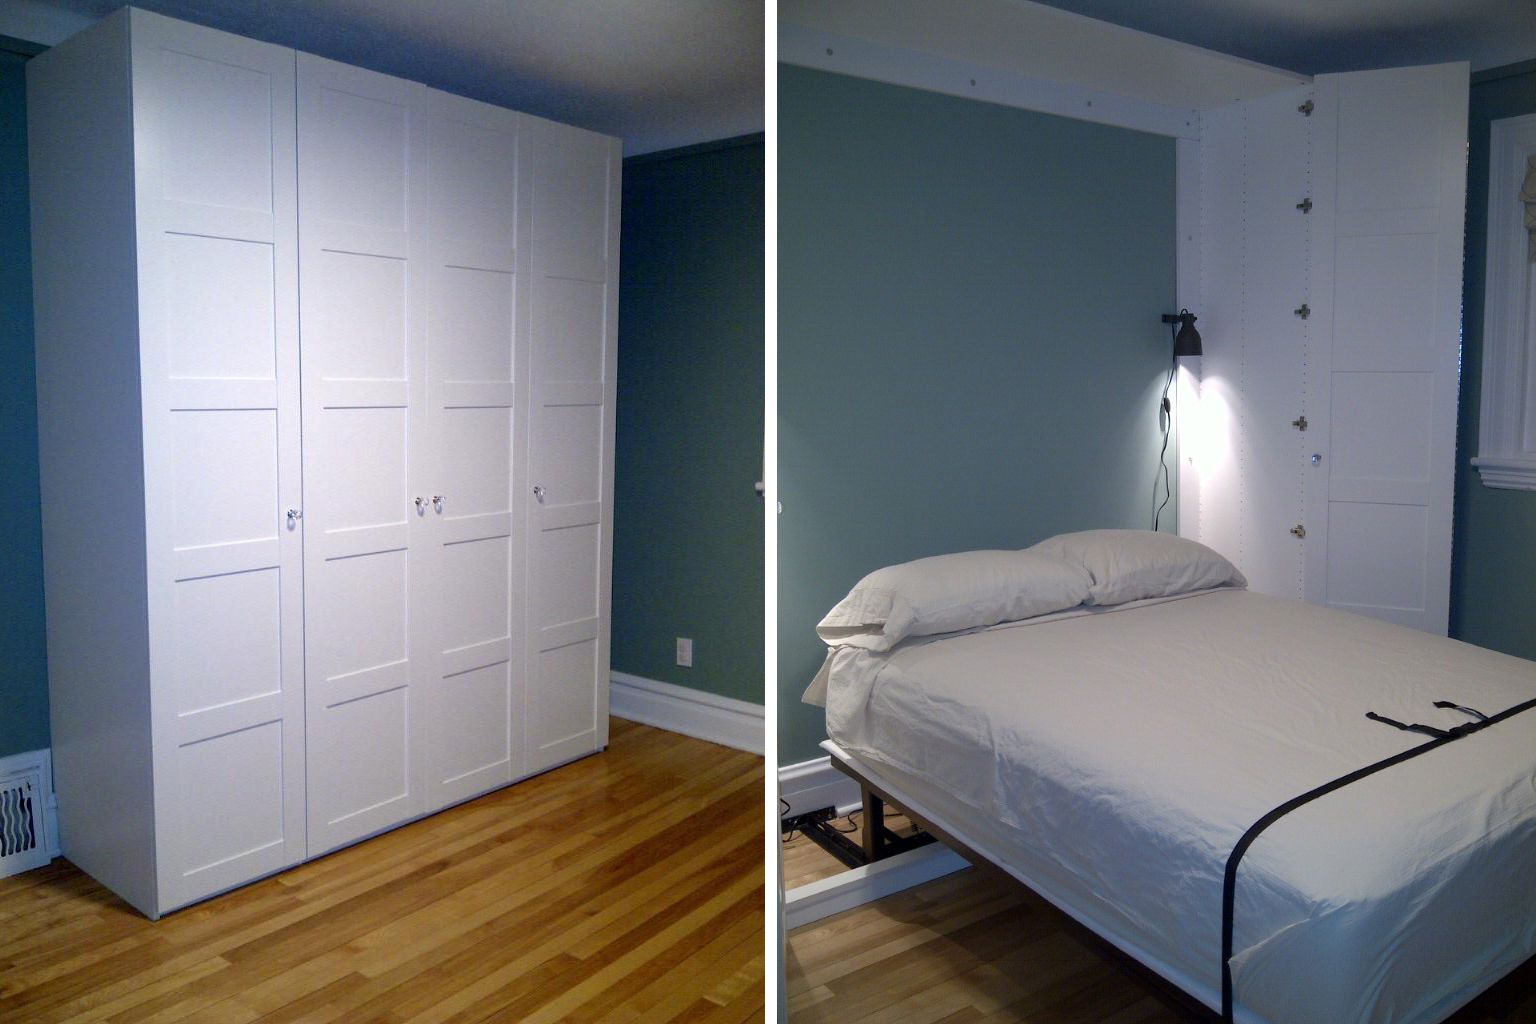 Design Ikea Wall Bed 12 diy murphy bed projects for every budget